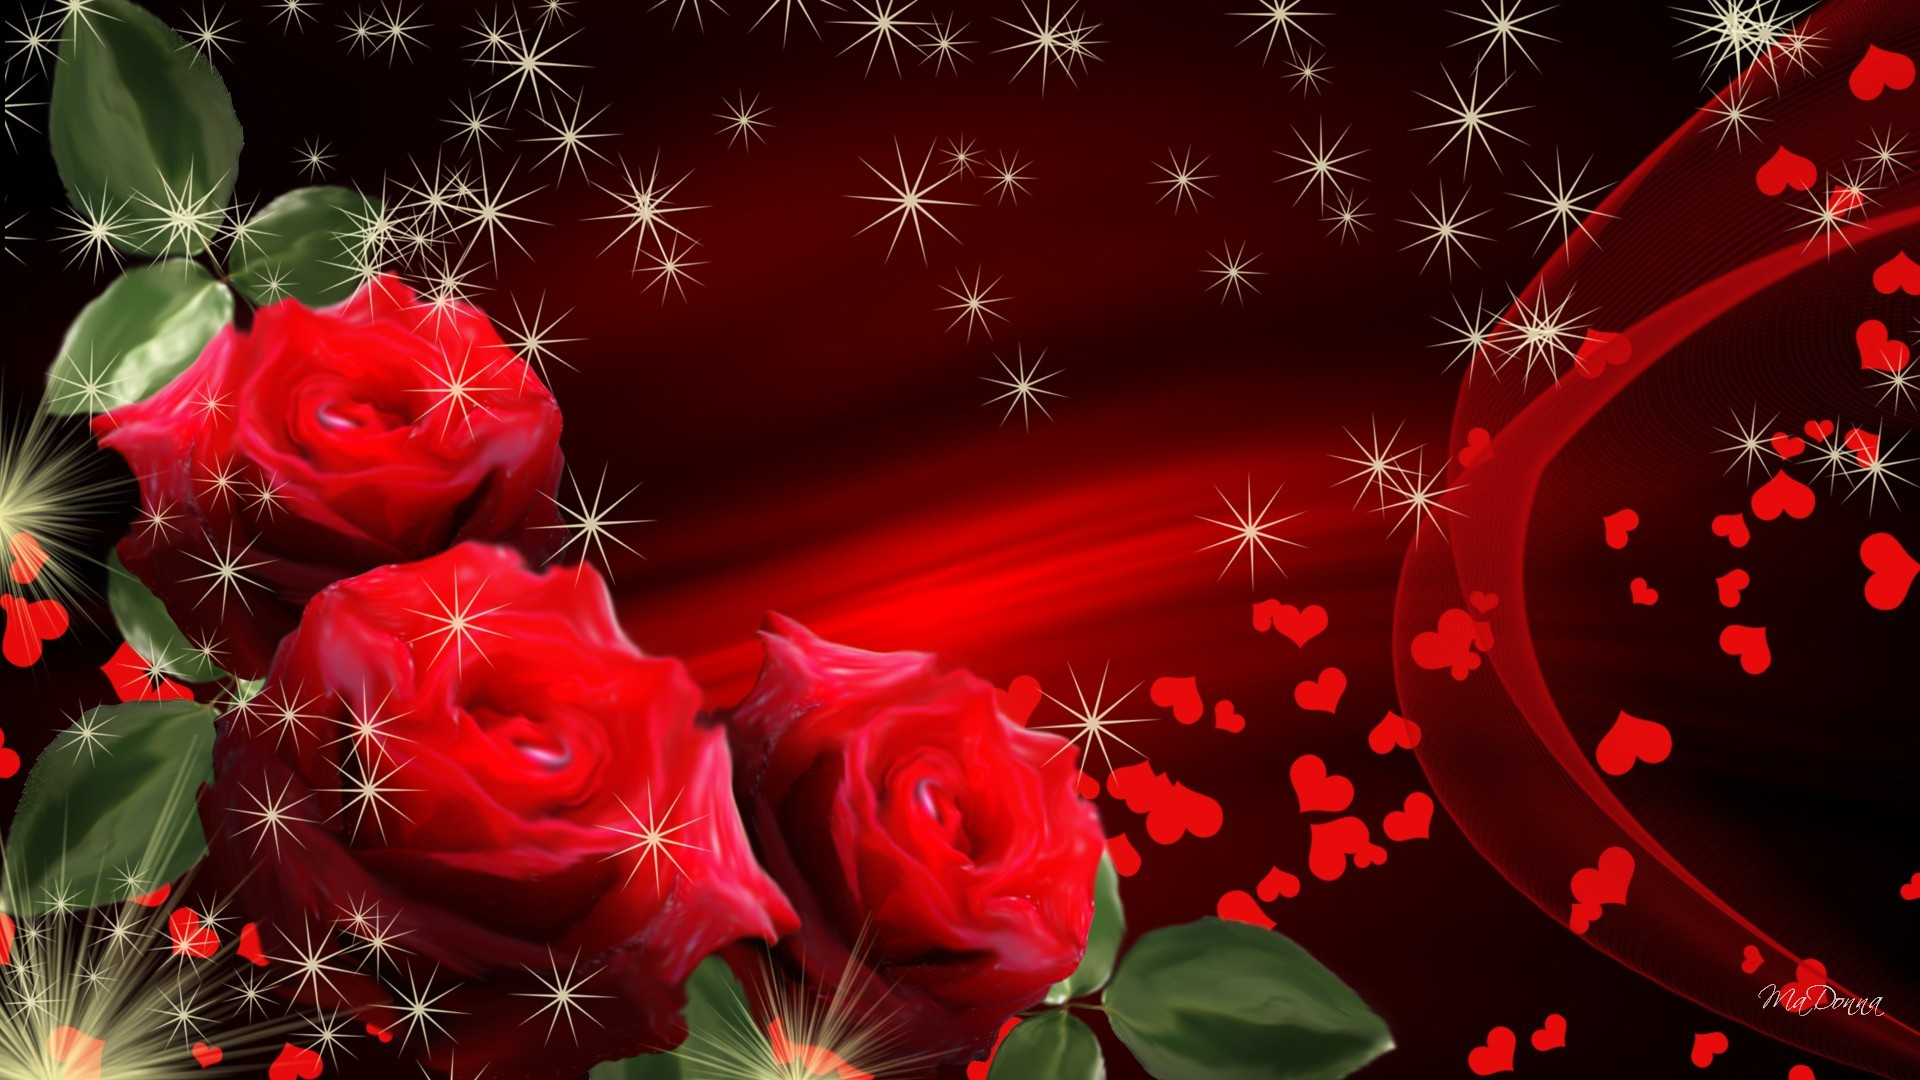 Download heart rose hd wallpapers gallery - Pink roses and hearts wallpaper ...